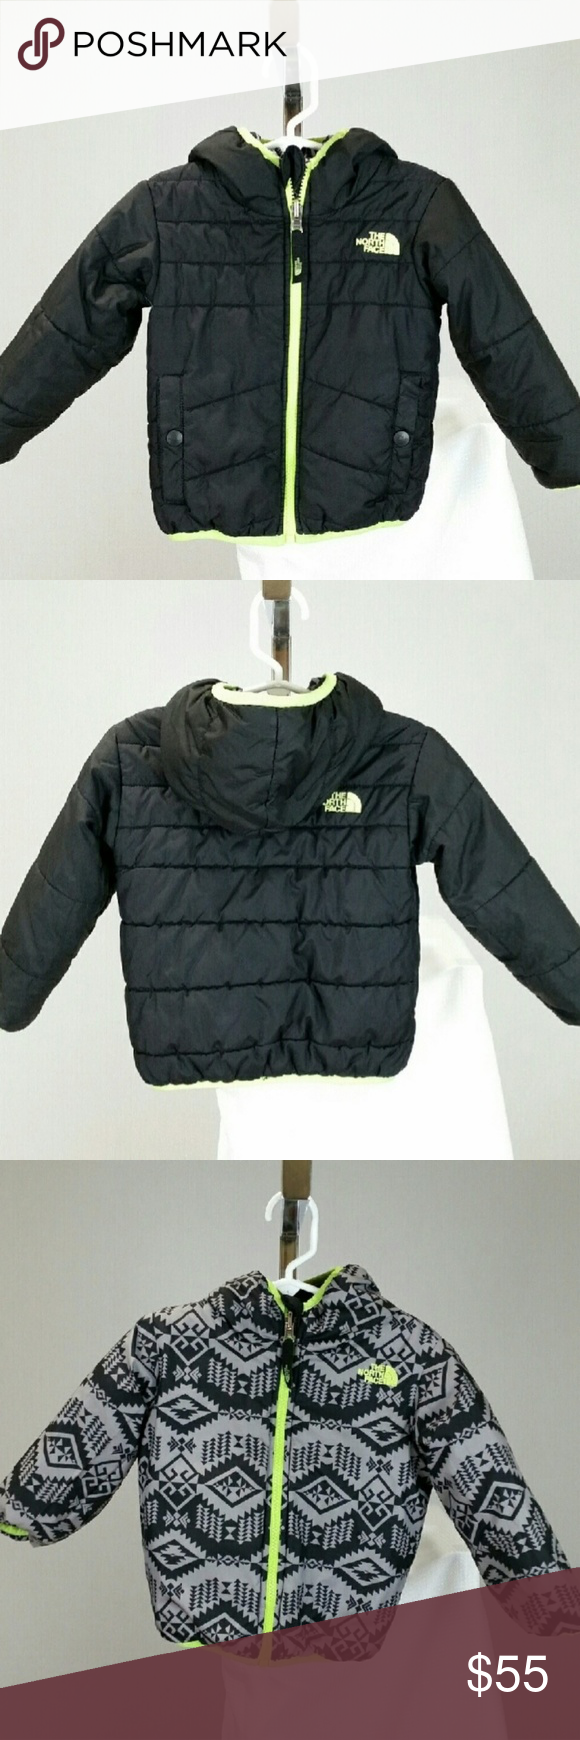 The North Face Toddler Reversible Jacket Boys 2t Boys Jacket Jackets Reversible Jackets [ 1740 x 580 Pixel ]